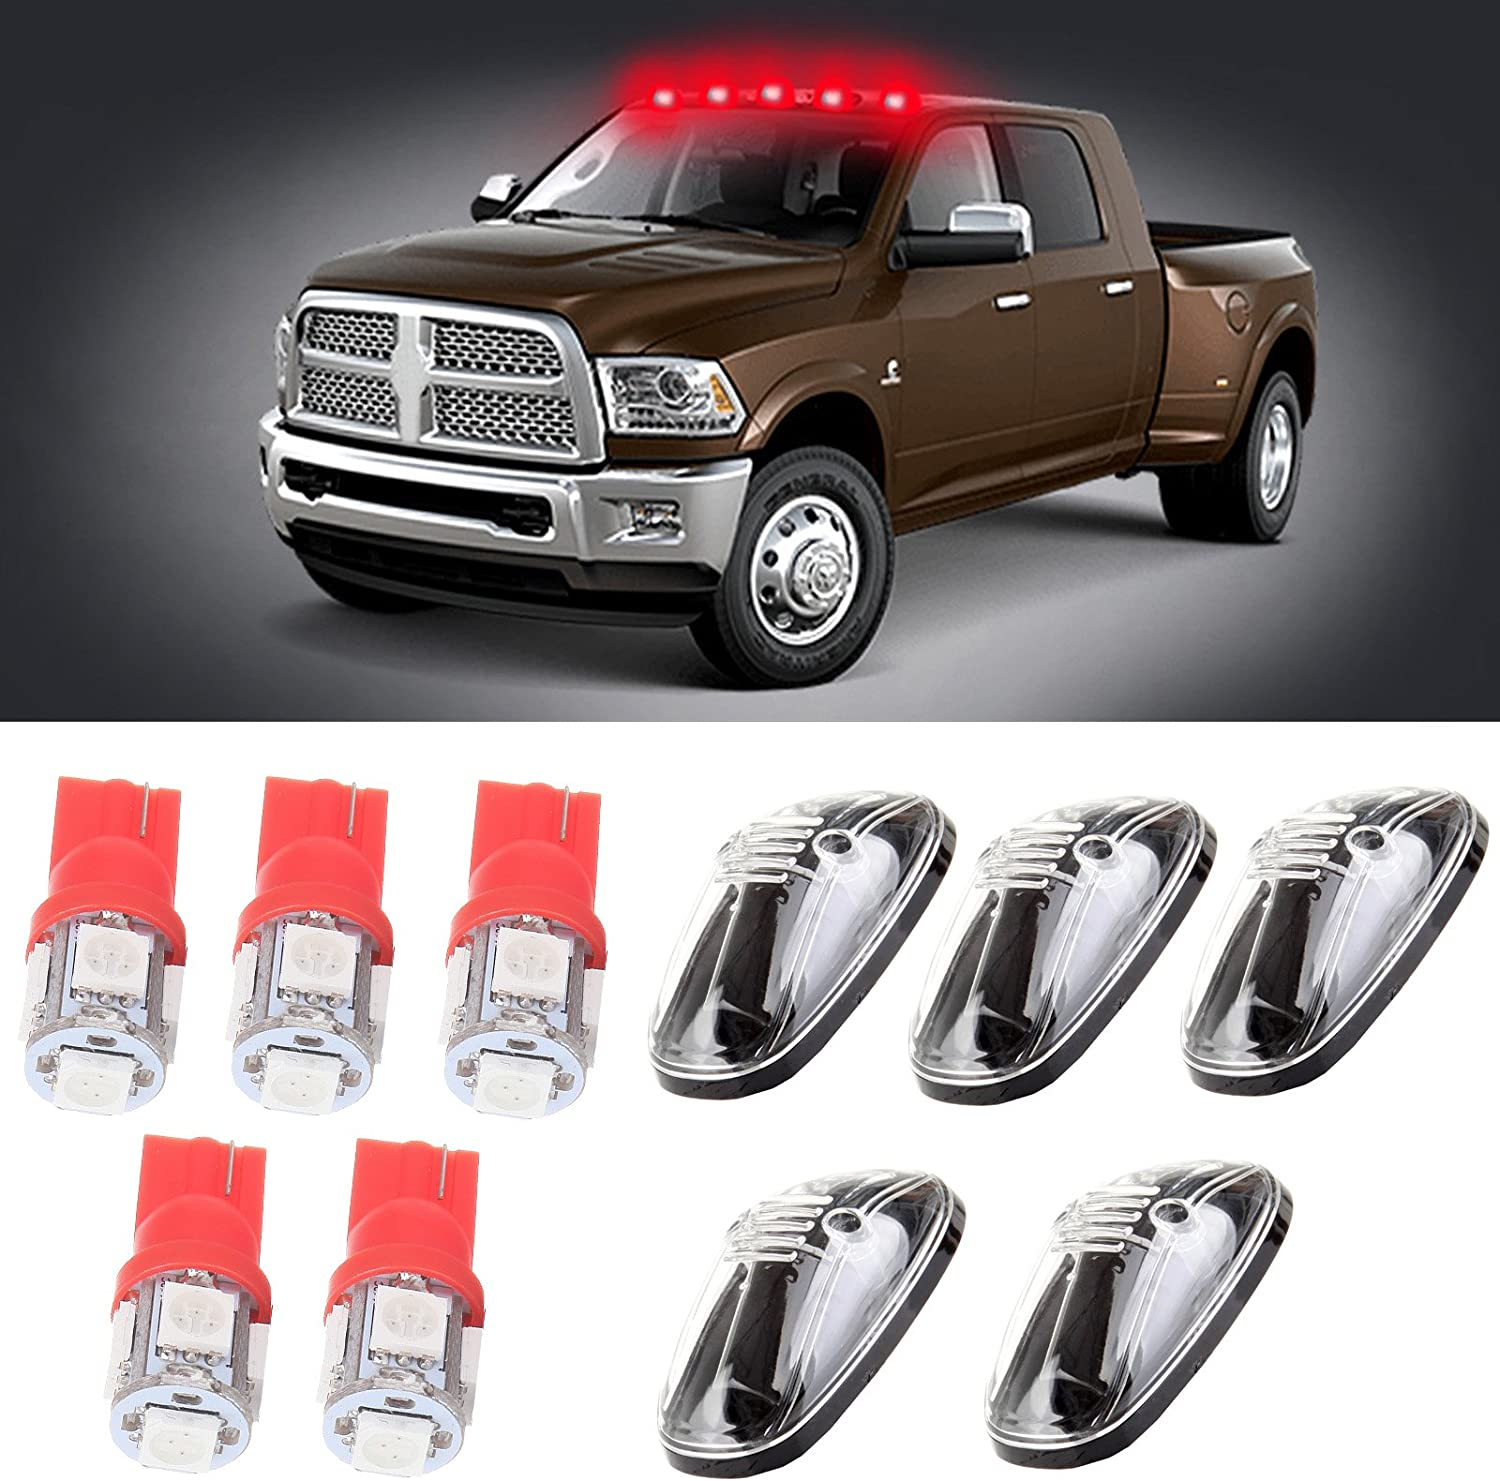 5x T10 W5W Wedge 168 194 LED Bulb Replacement fit for 1999-2002 Dodge Ram 2500 3500 4500 cciyu 5x Clear LED Cab Roof Marker Clearance Covers